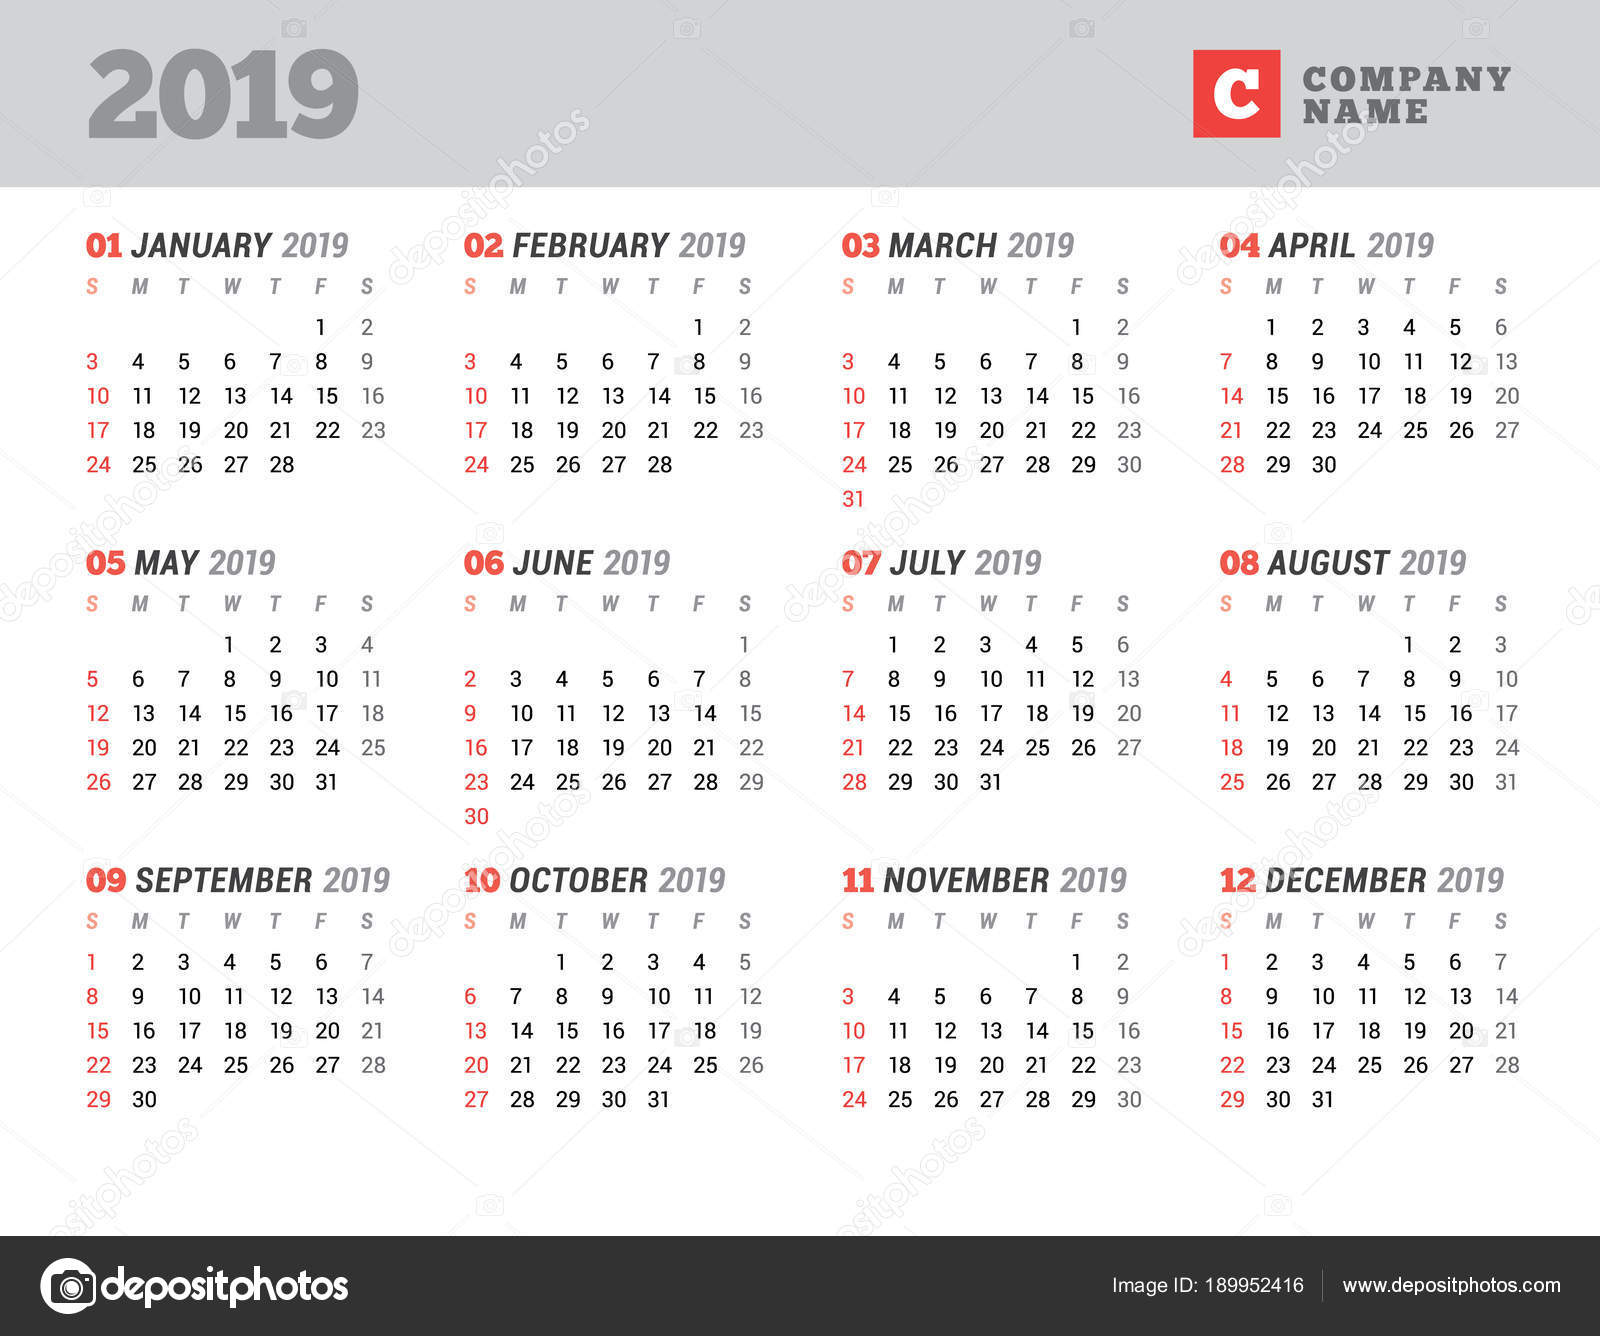 calendar template for 2019 year stationery design week starts on sunday 12 months on the page vector illustration vector by mikhailmorosin